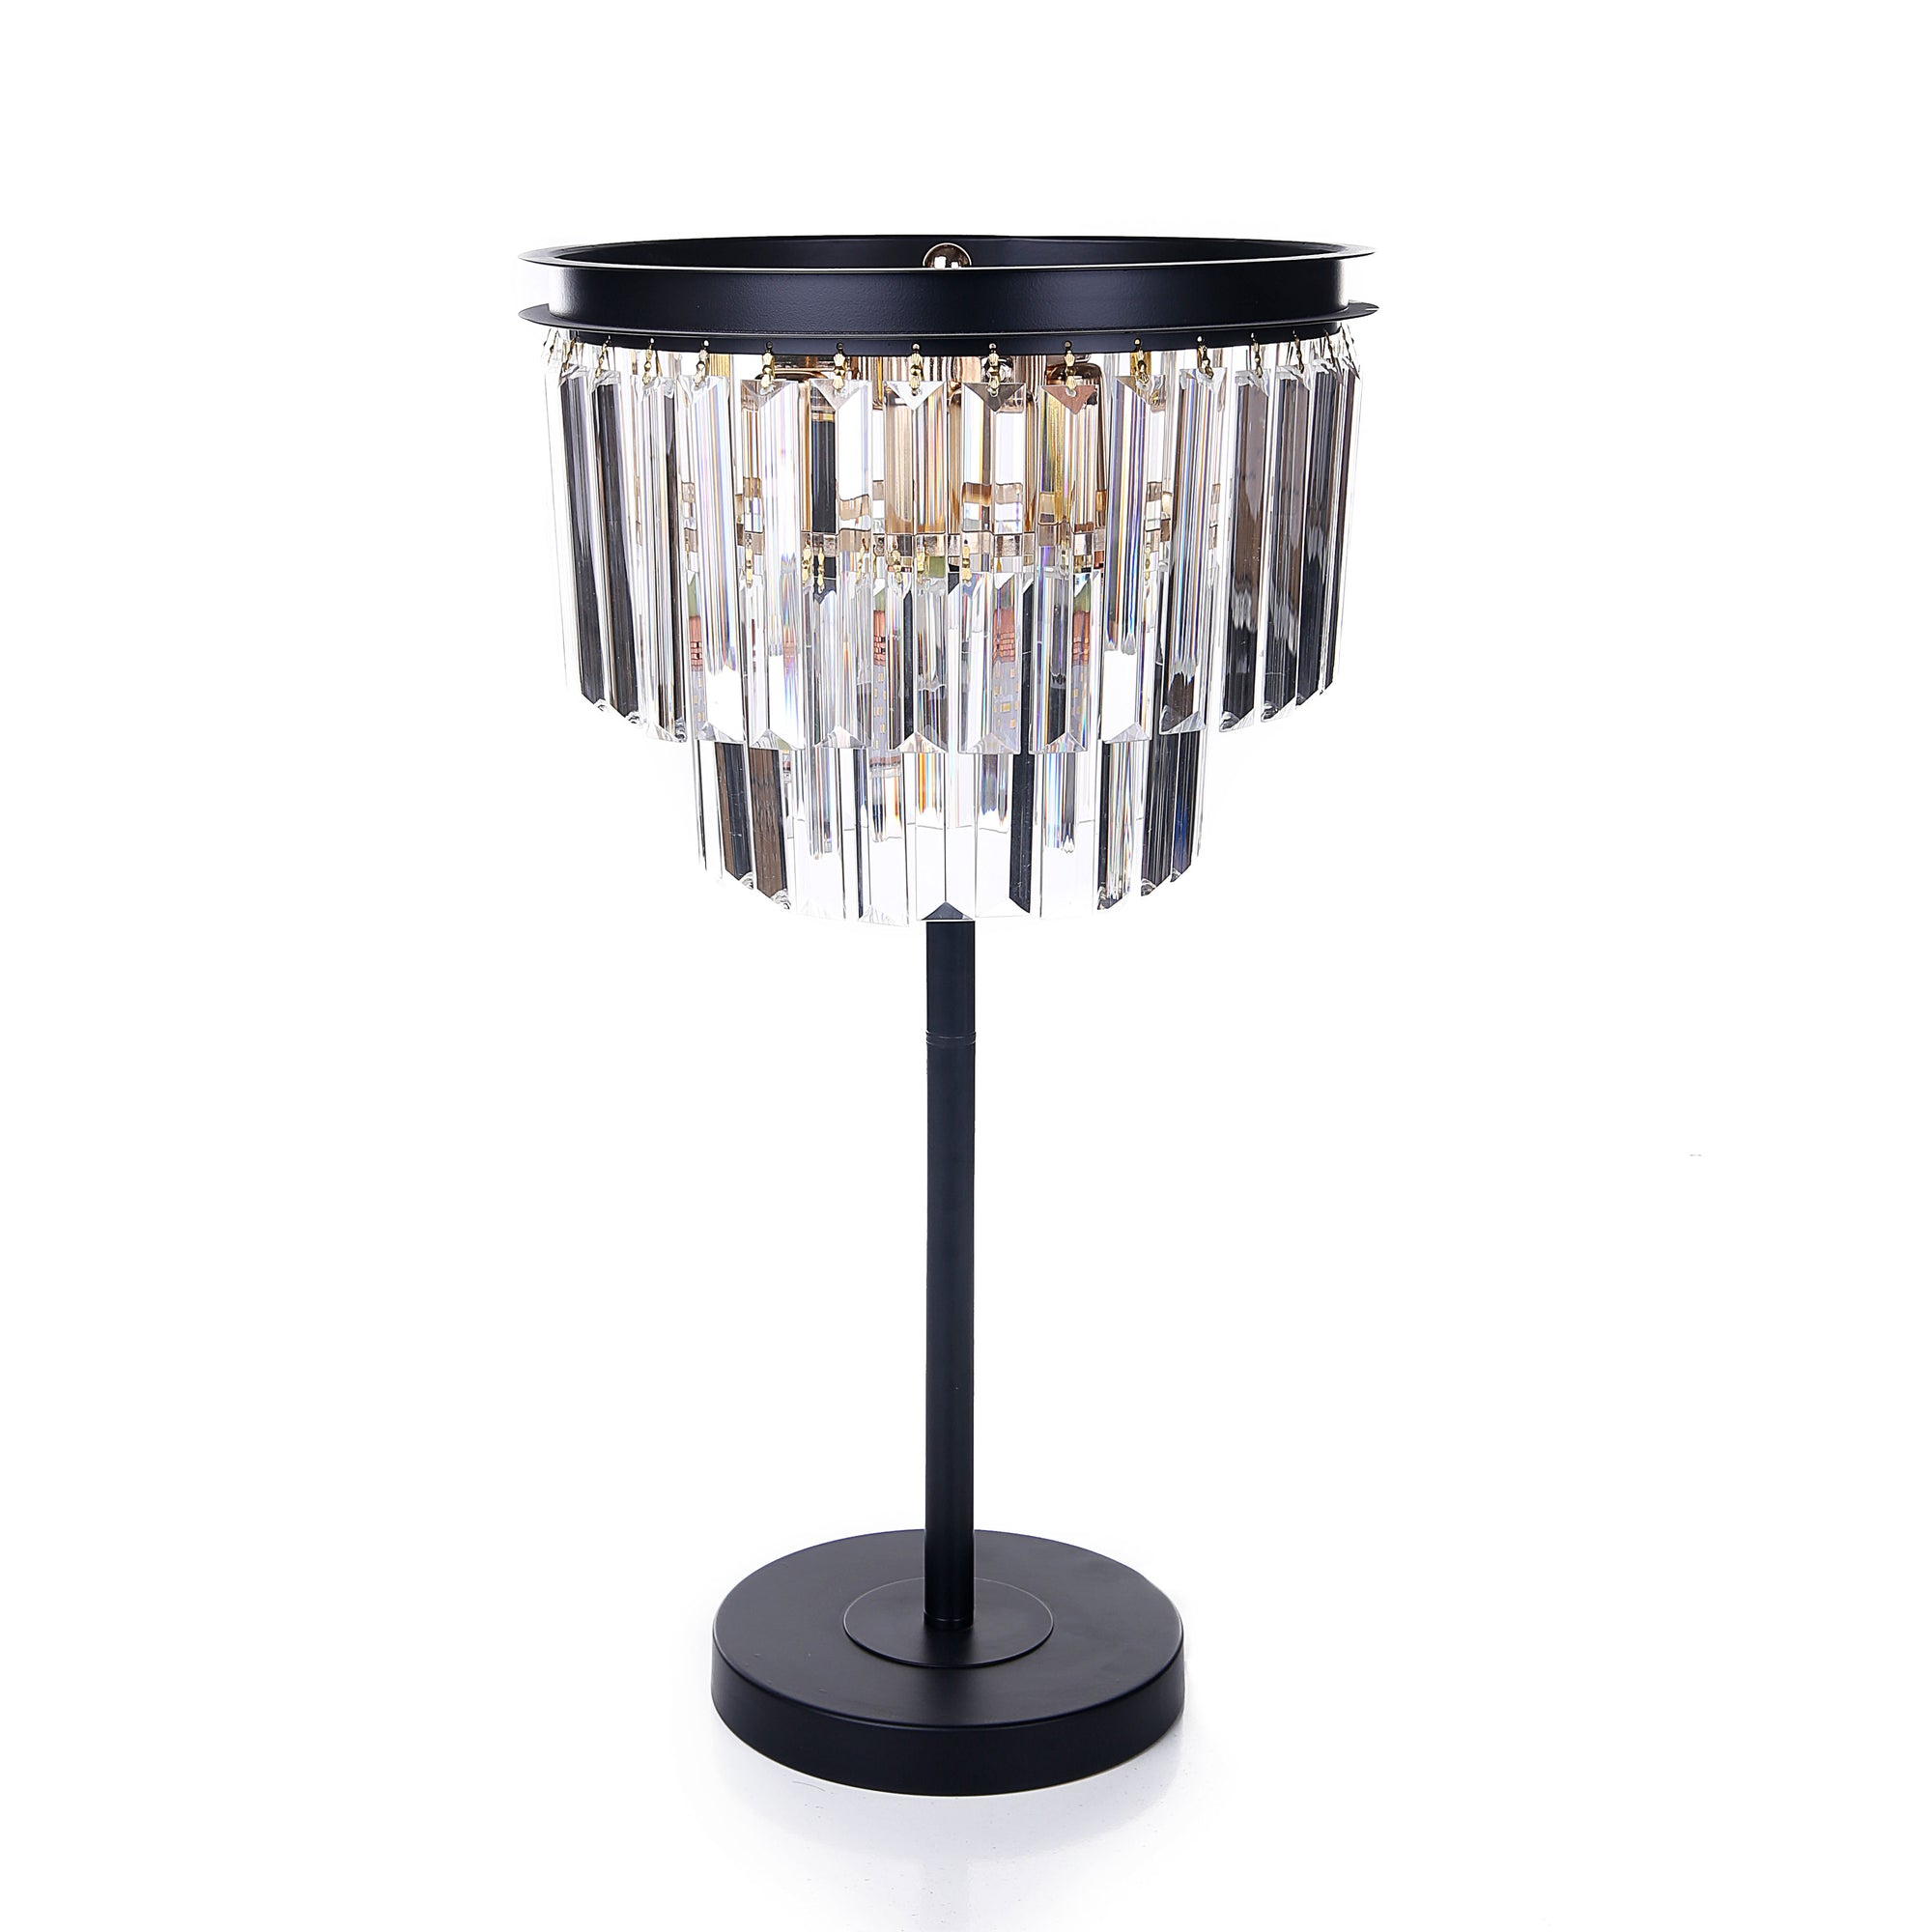 Matt Black Crystle Bars Table Lamps